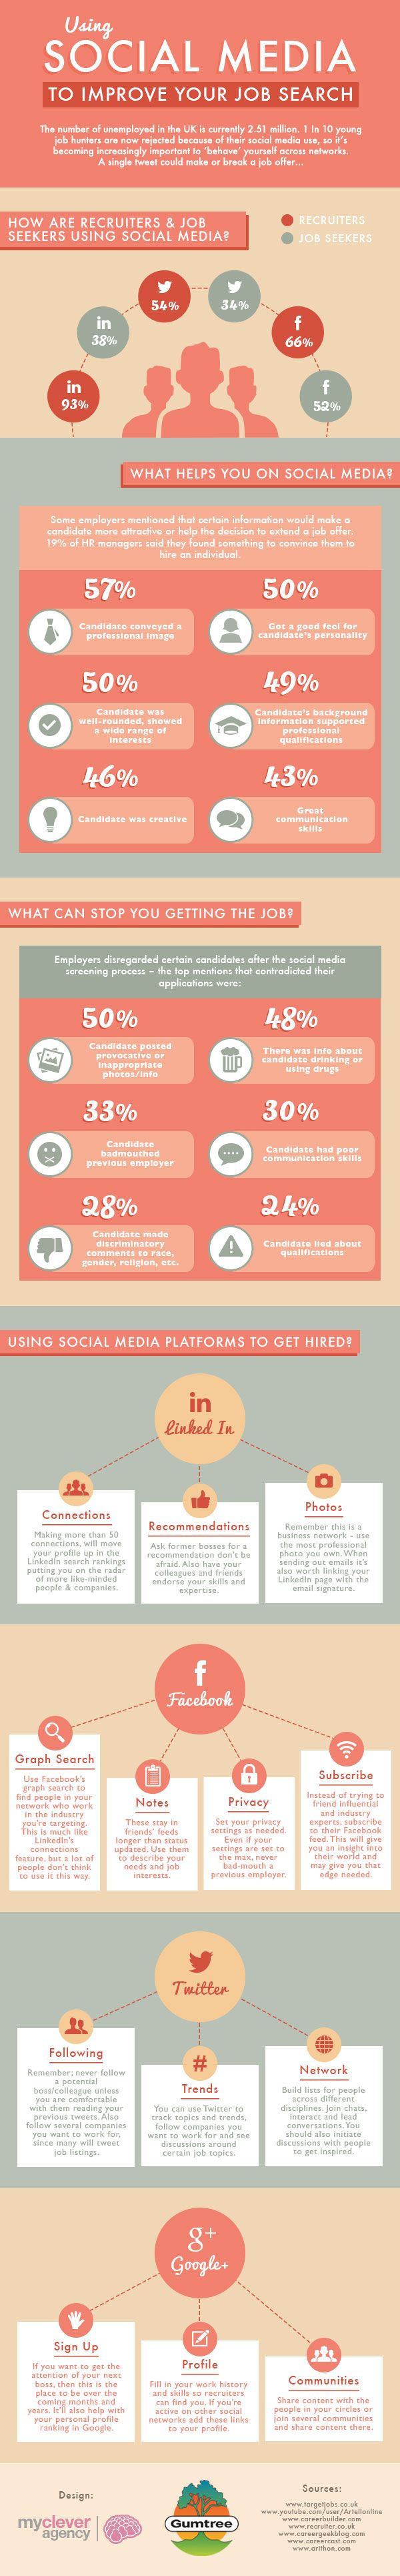 Nice How To Use Social Media To Your Advantage In Your Job Search [INFOGRAPHIC]